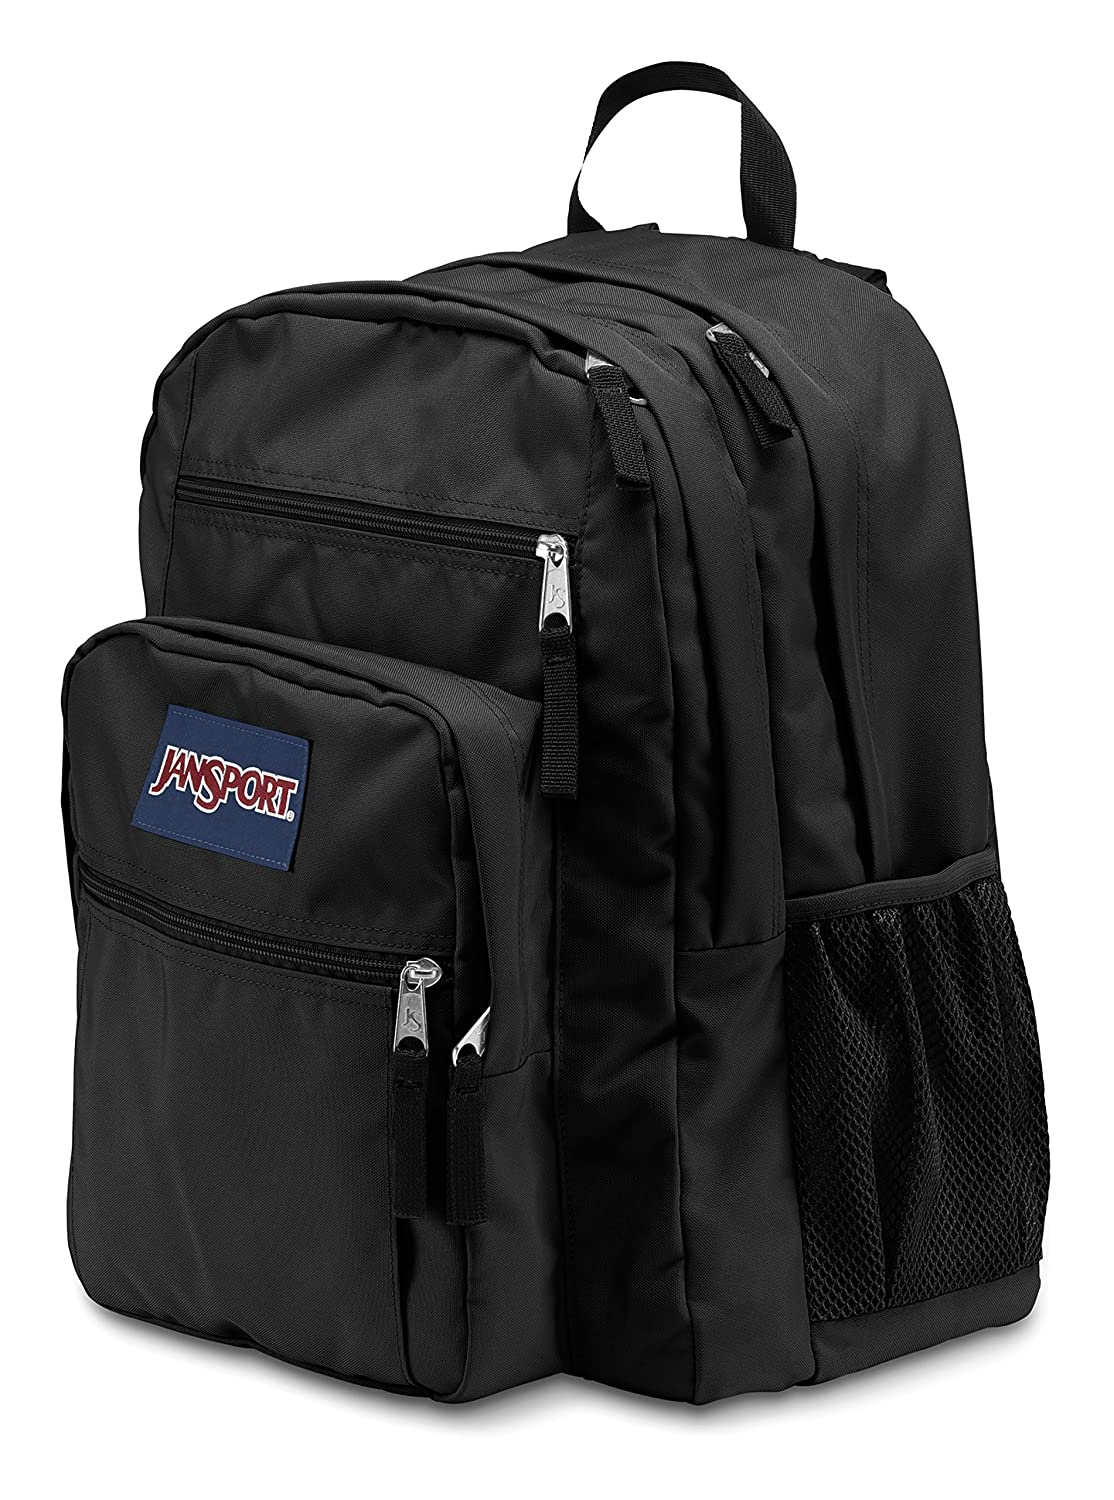 66805eb5f875 JanSport Big Student Backpack (Black)  Amazon.in  Bags